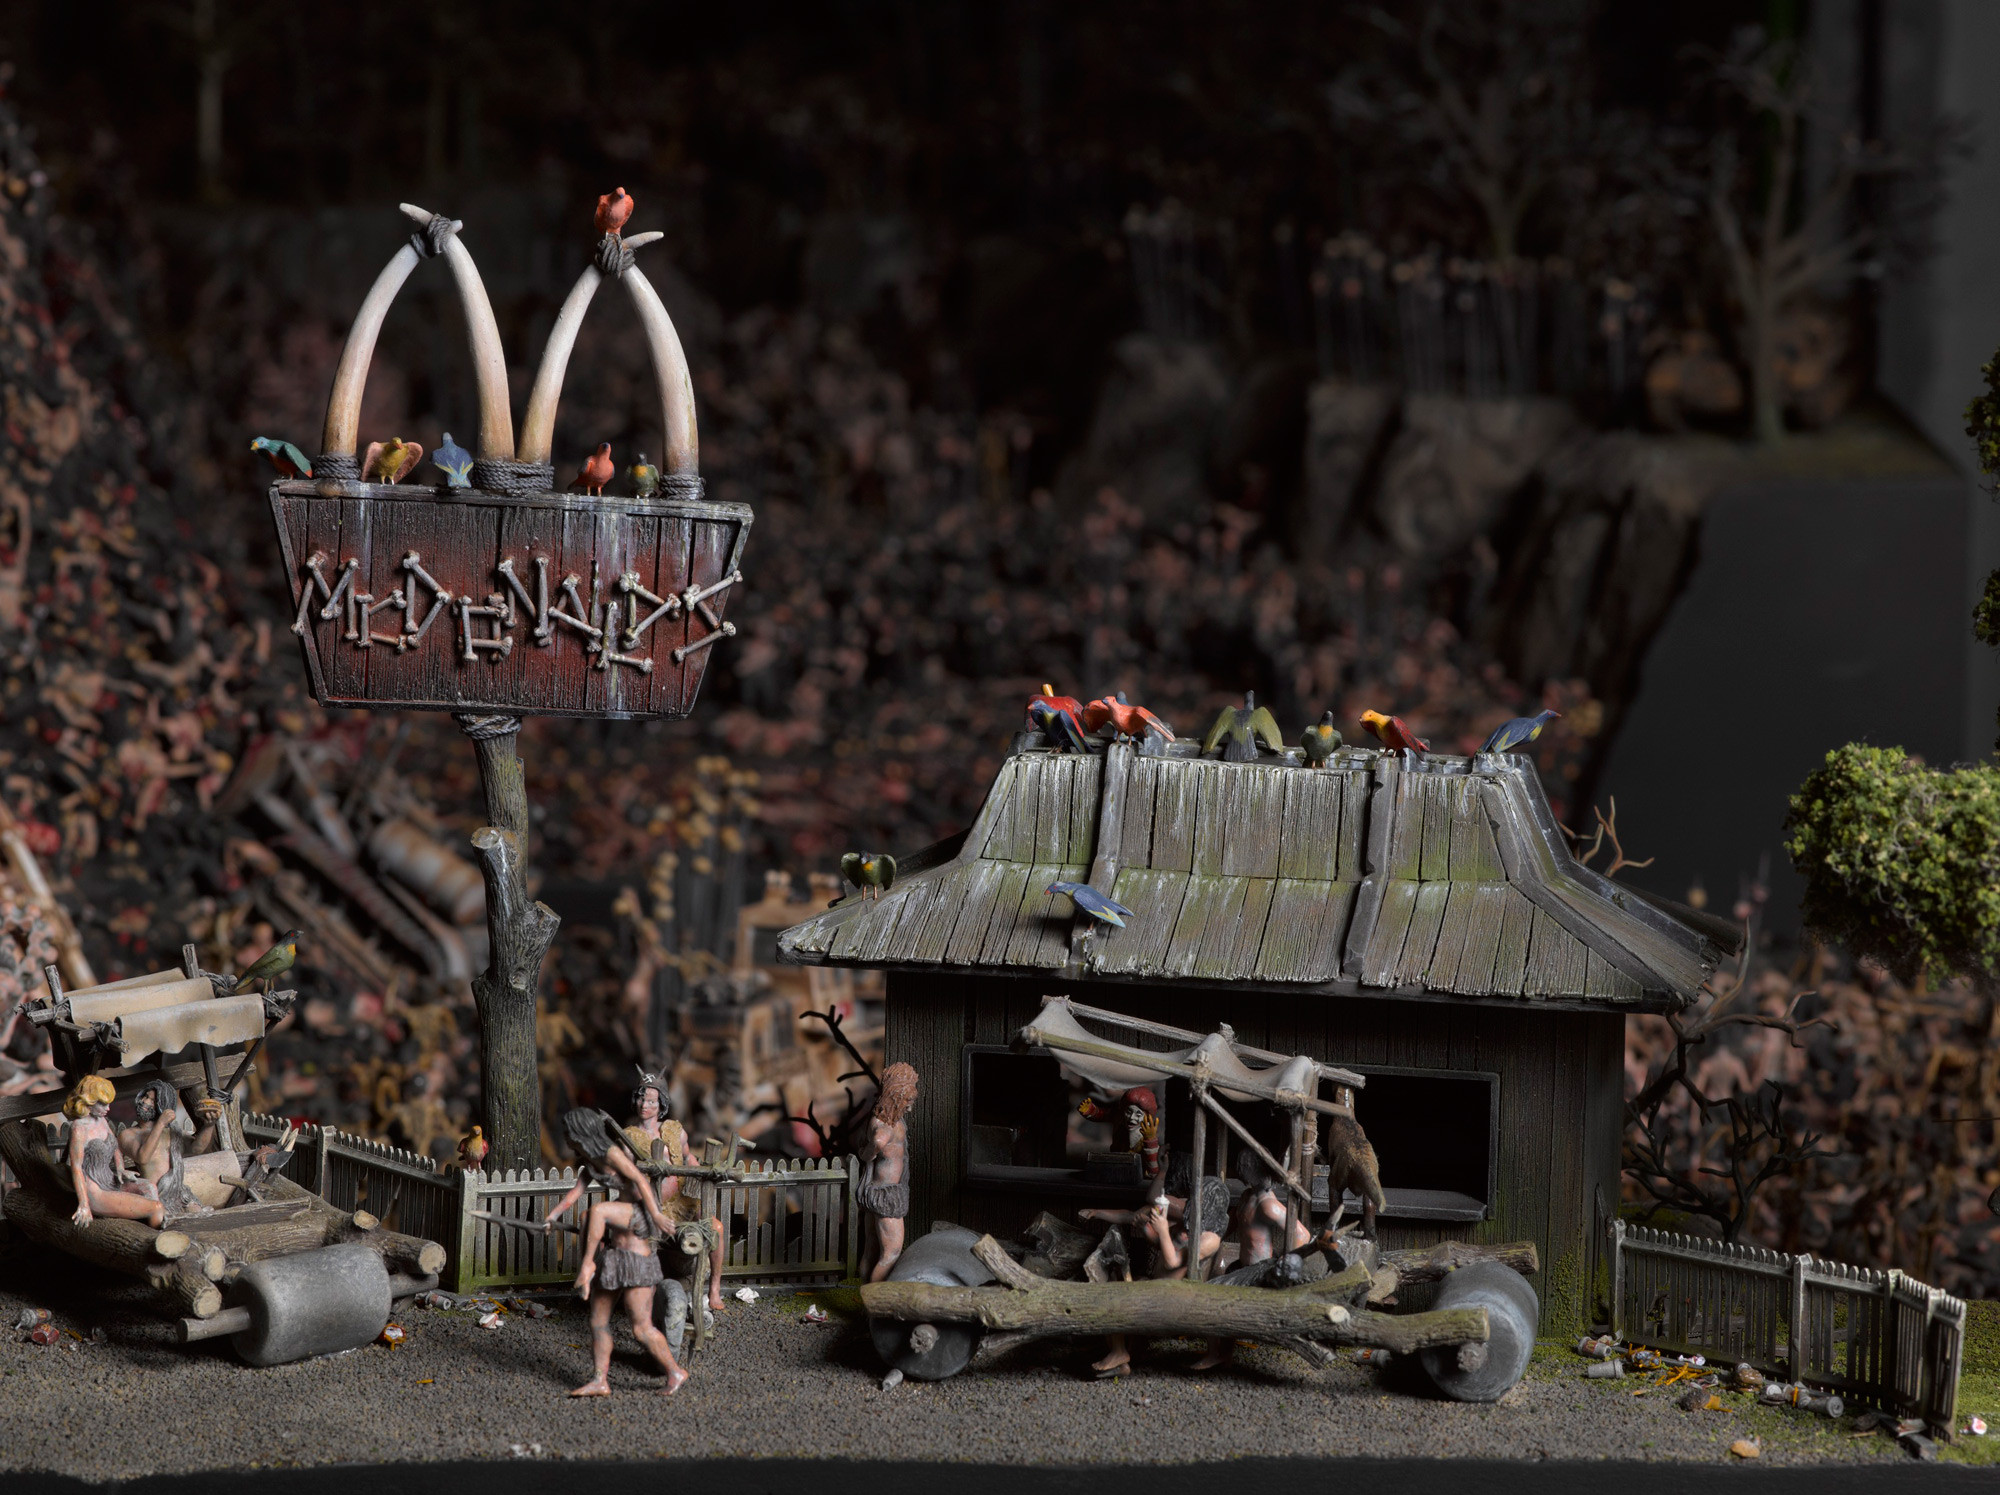 Hitler And Mcdonalds? Wtf? But Seriously, These Are Some Awesome Depiction!'